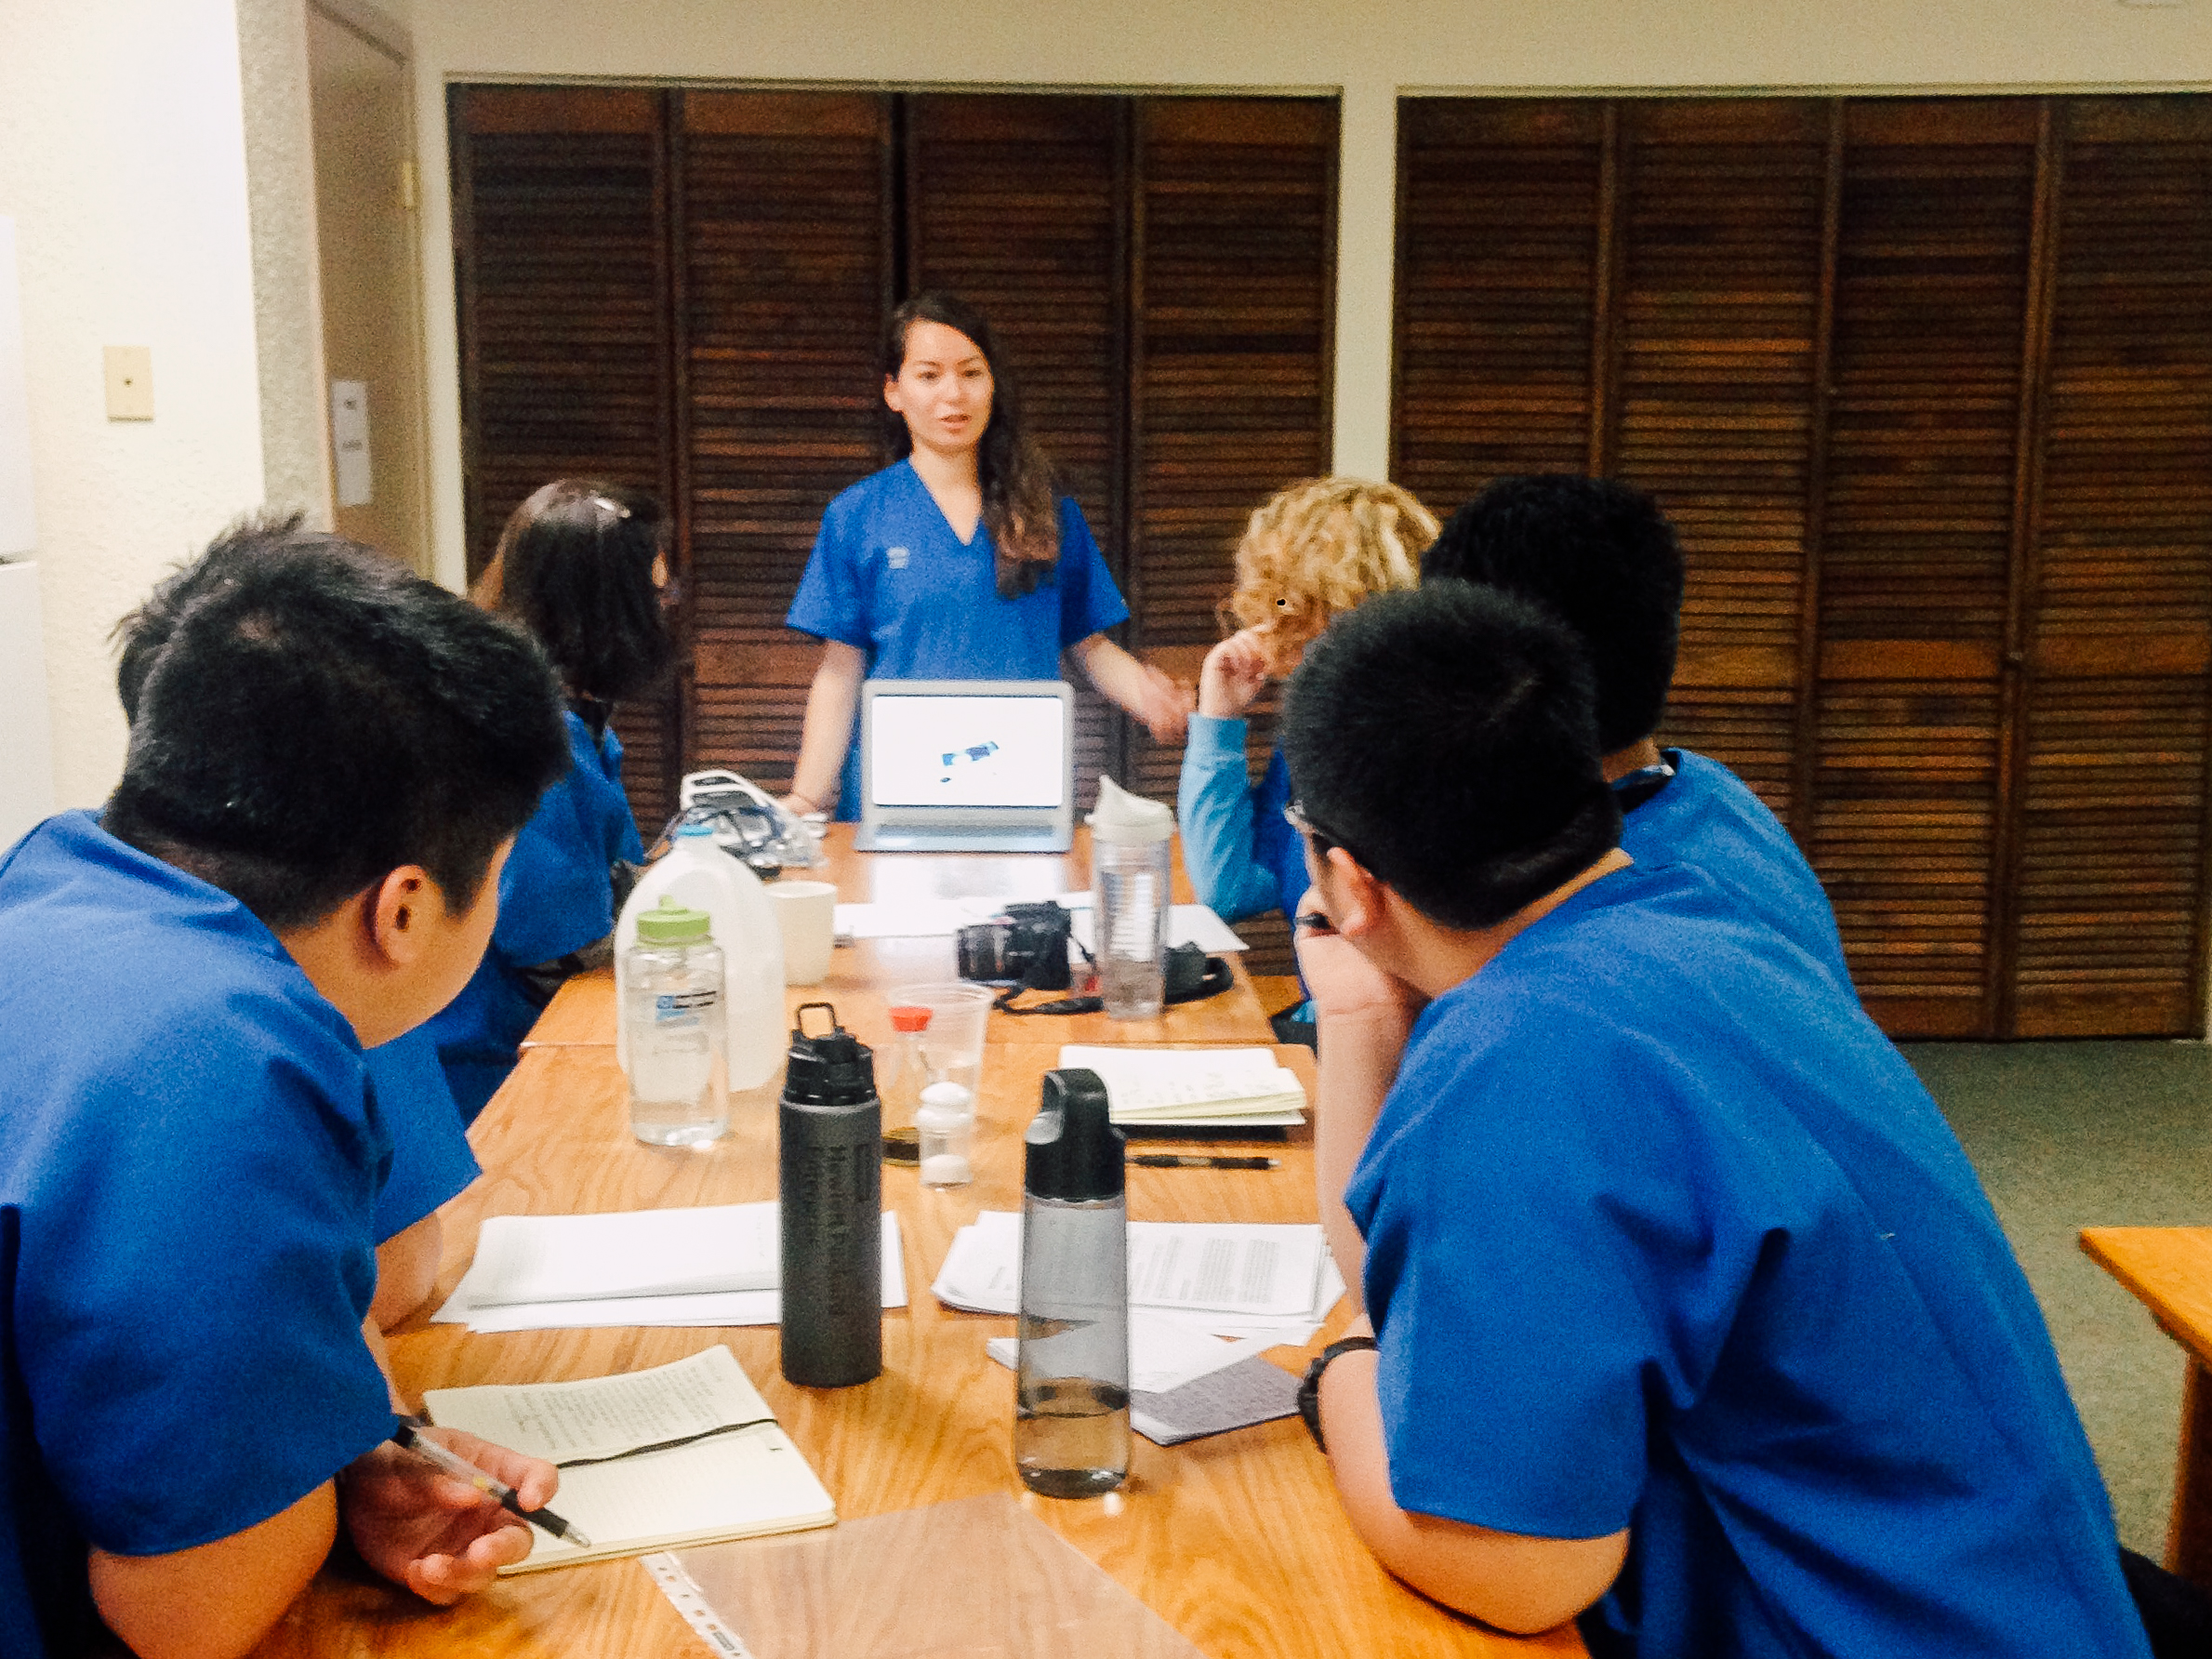 A meeting with the medical fellows